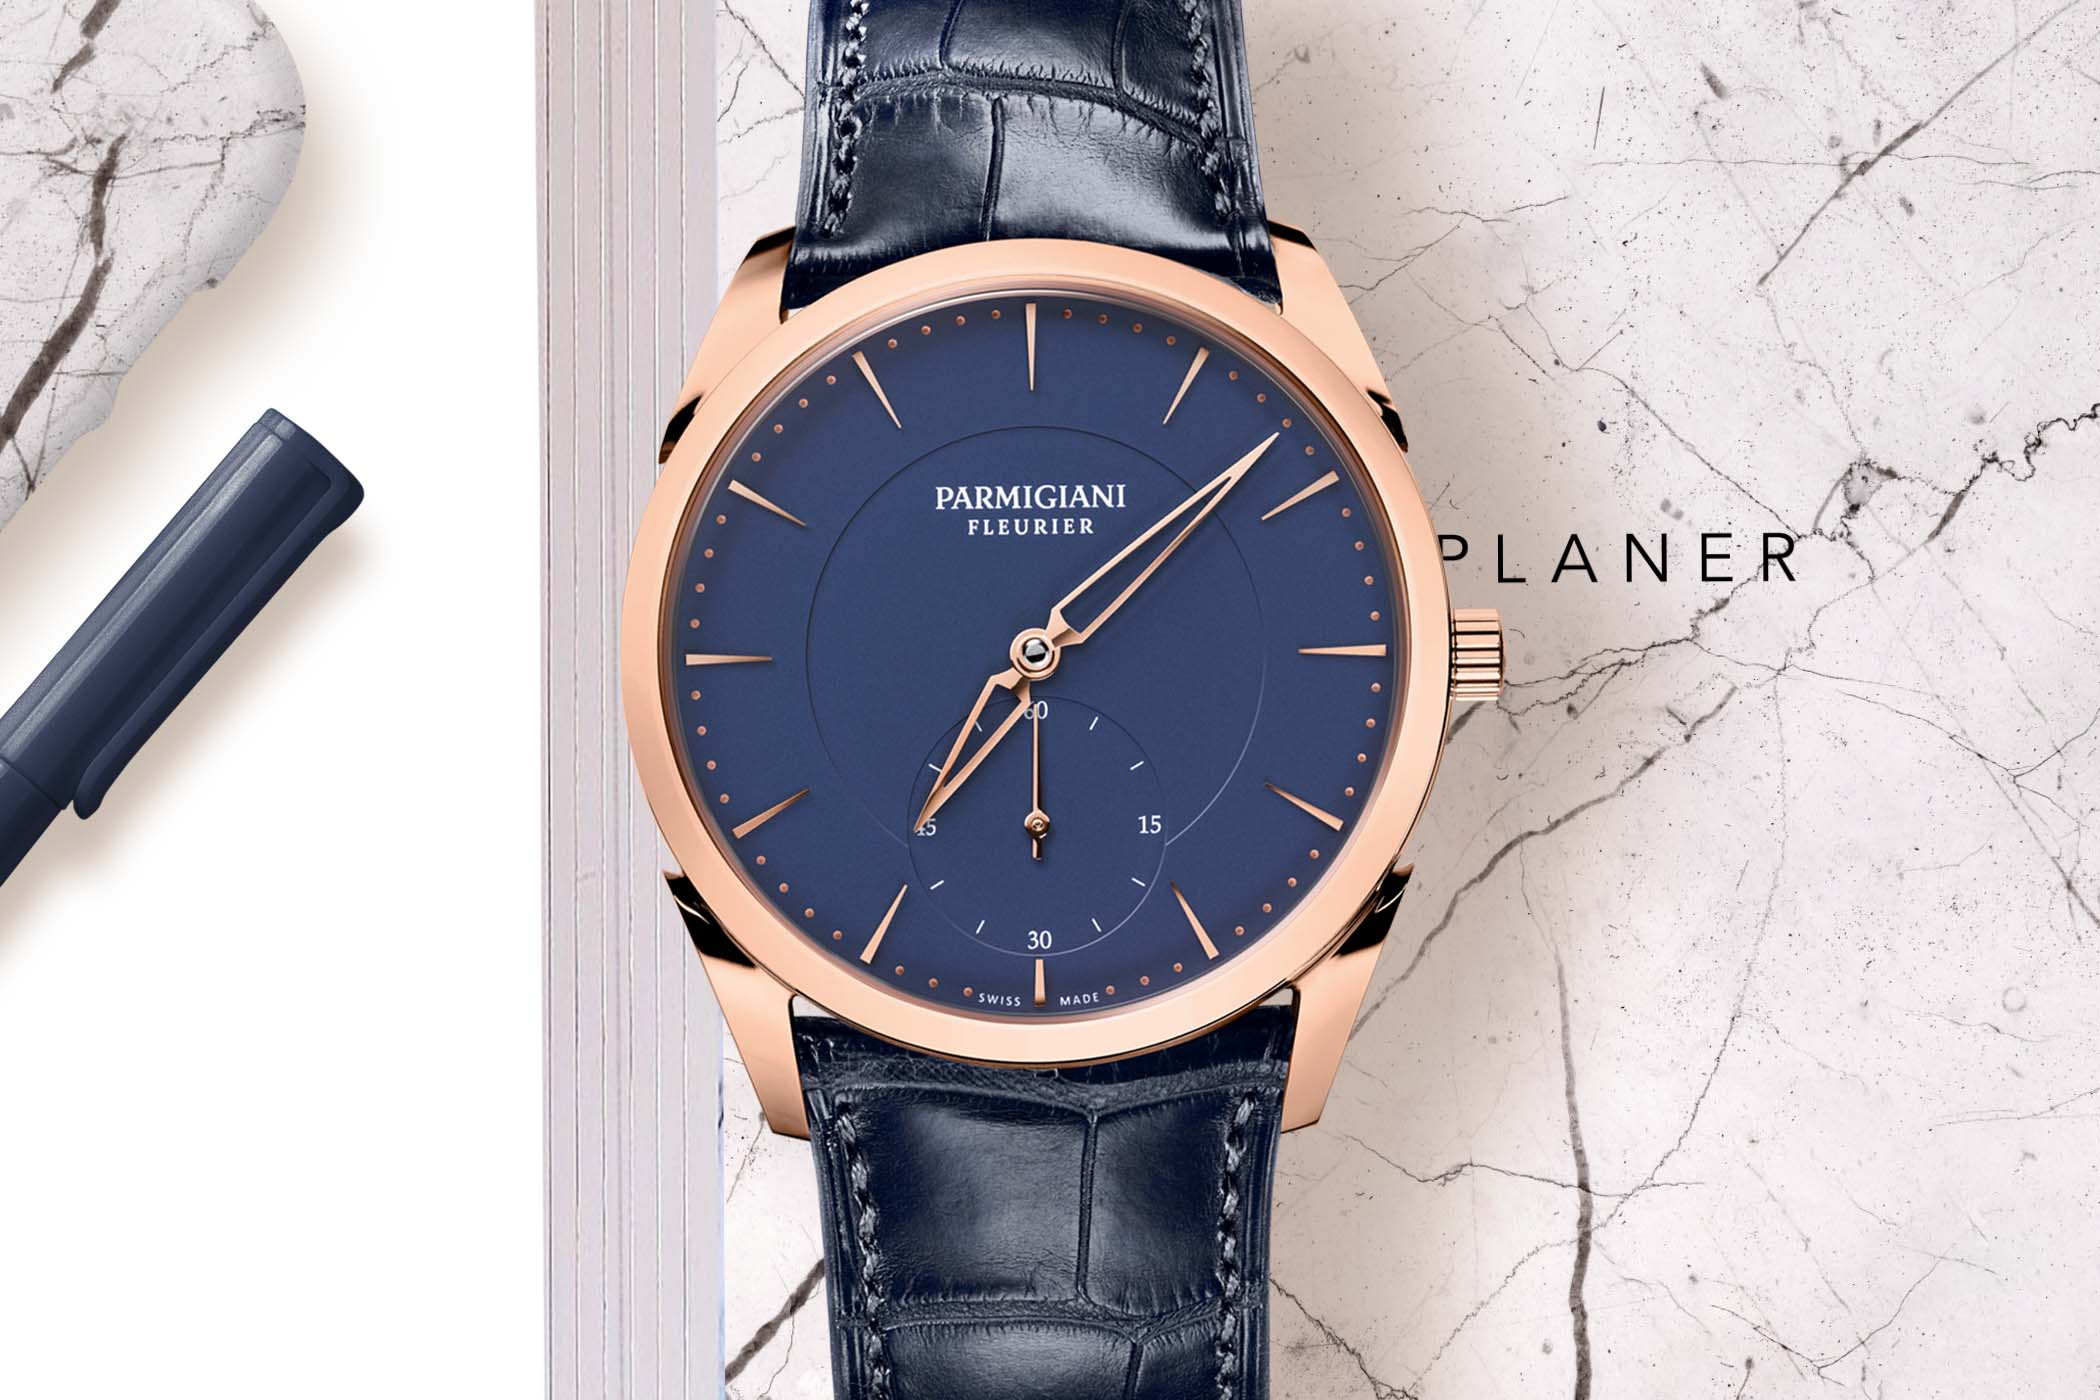 2019 Redesigned Parmigiani Fleurier Tonda 1950 Ultra-Thin Dress Watch